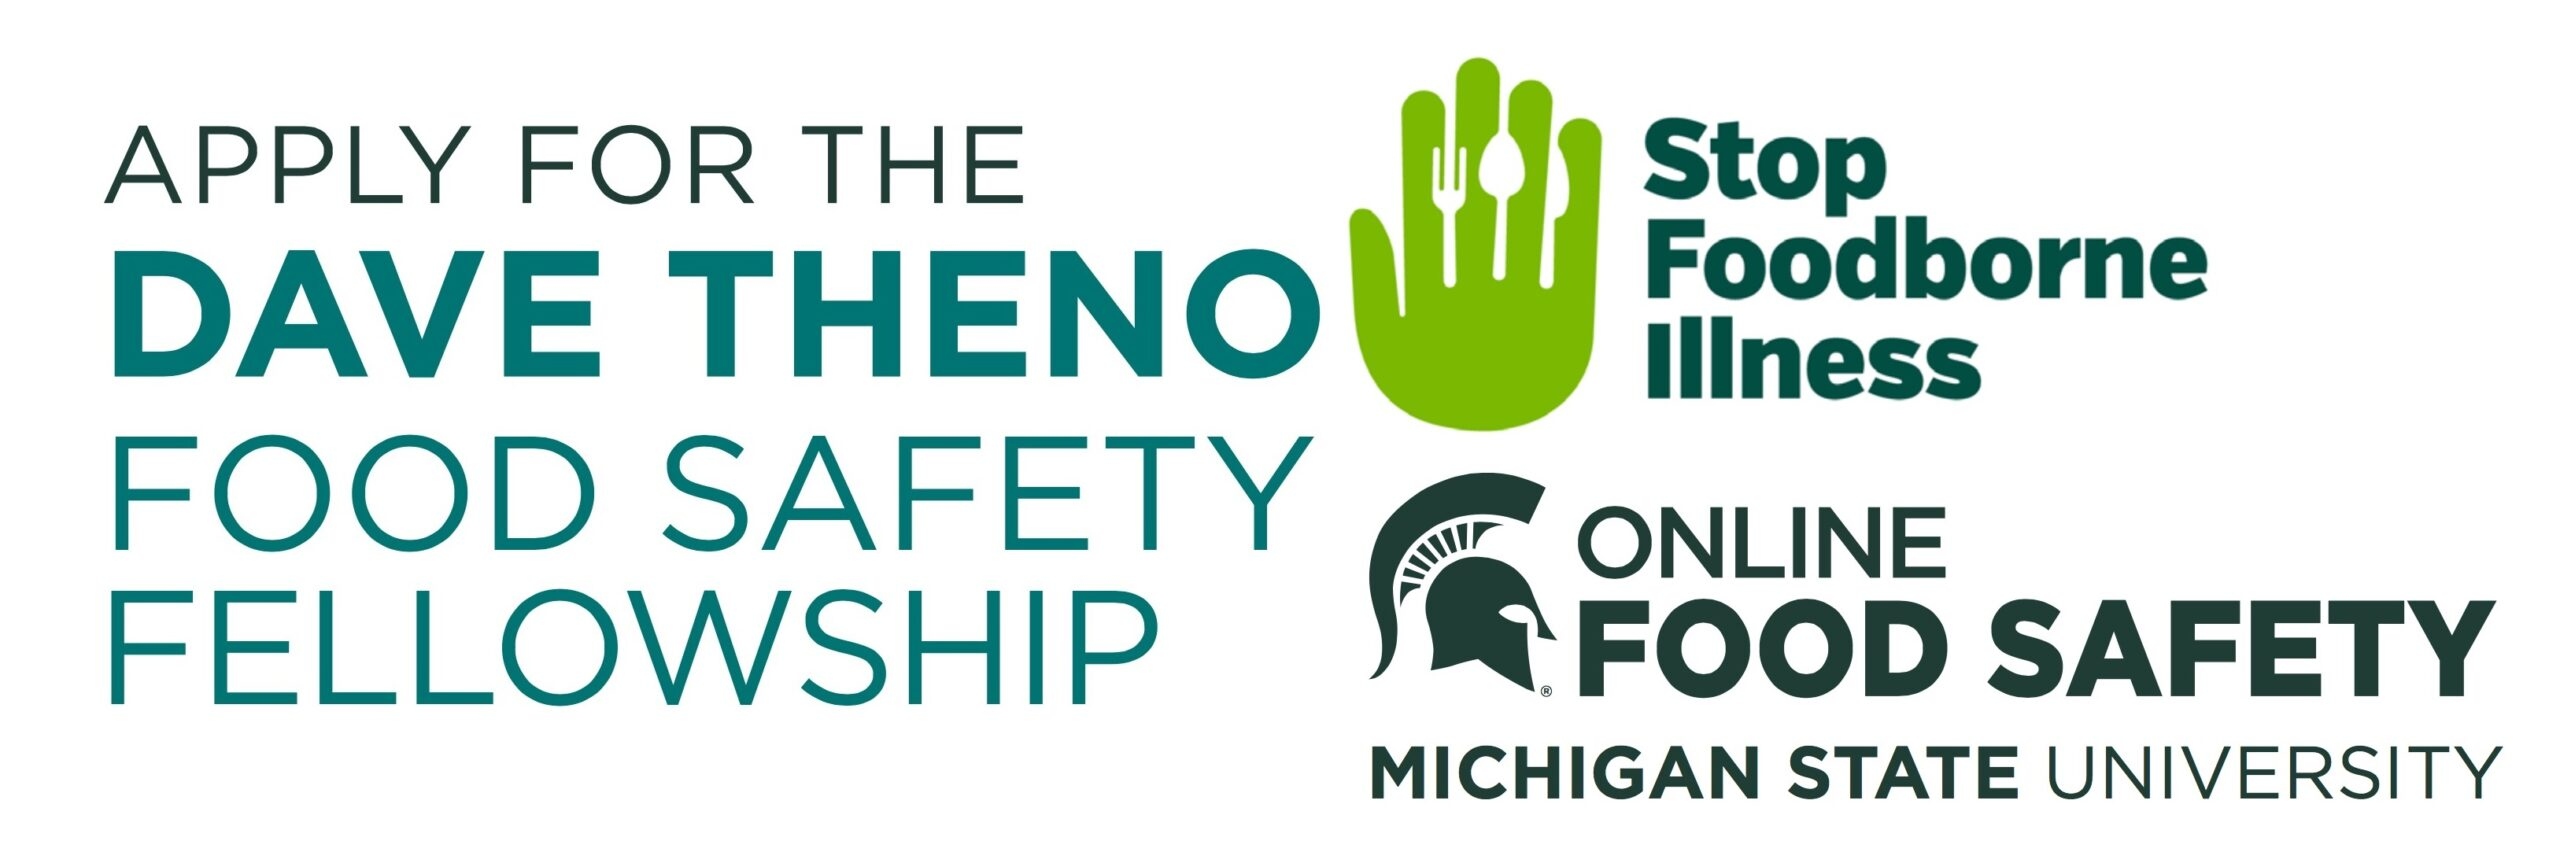 Dave Theno Food Safety Fellowship